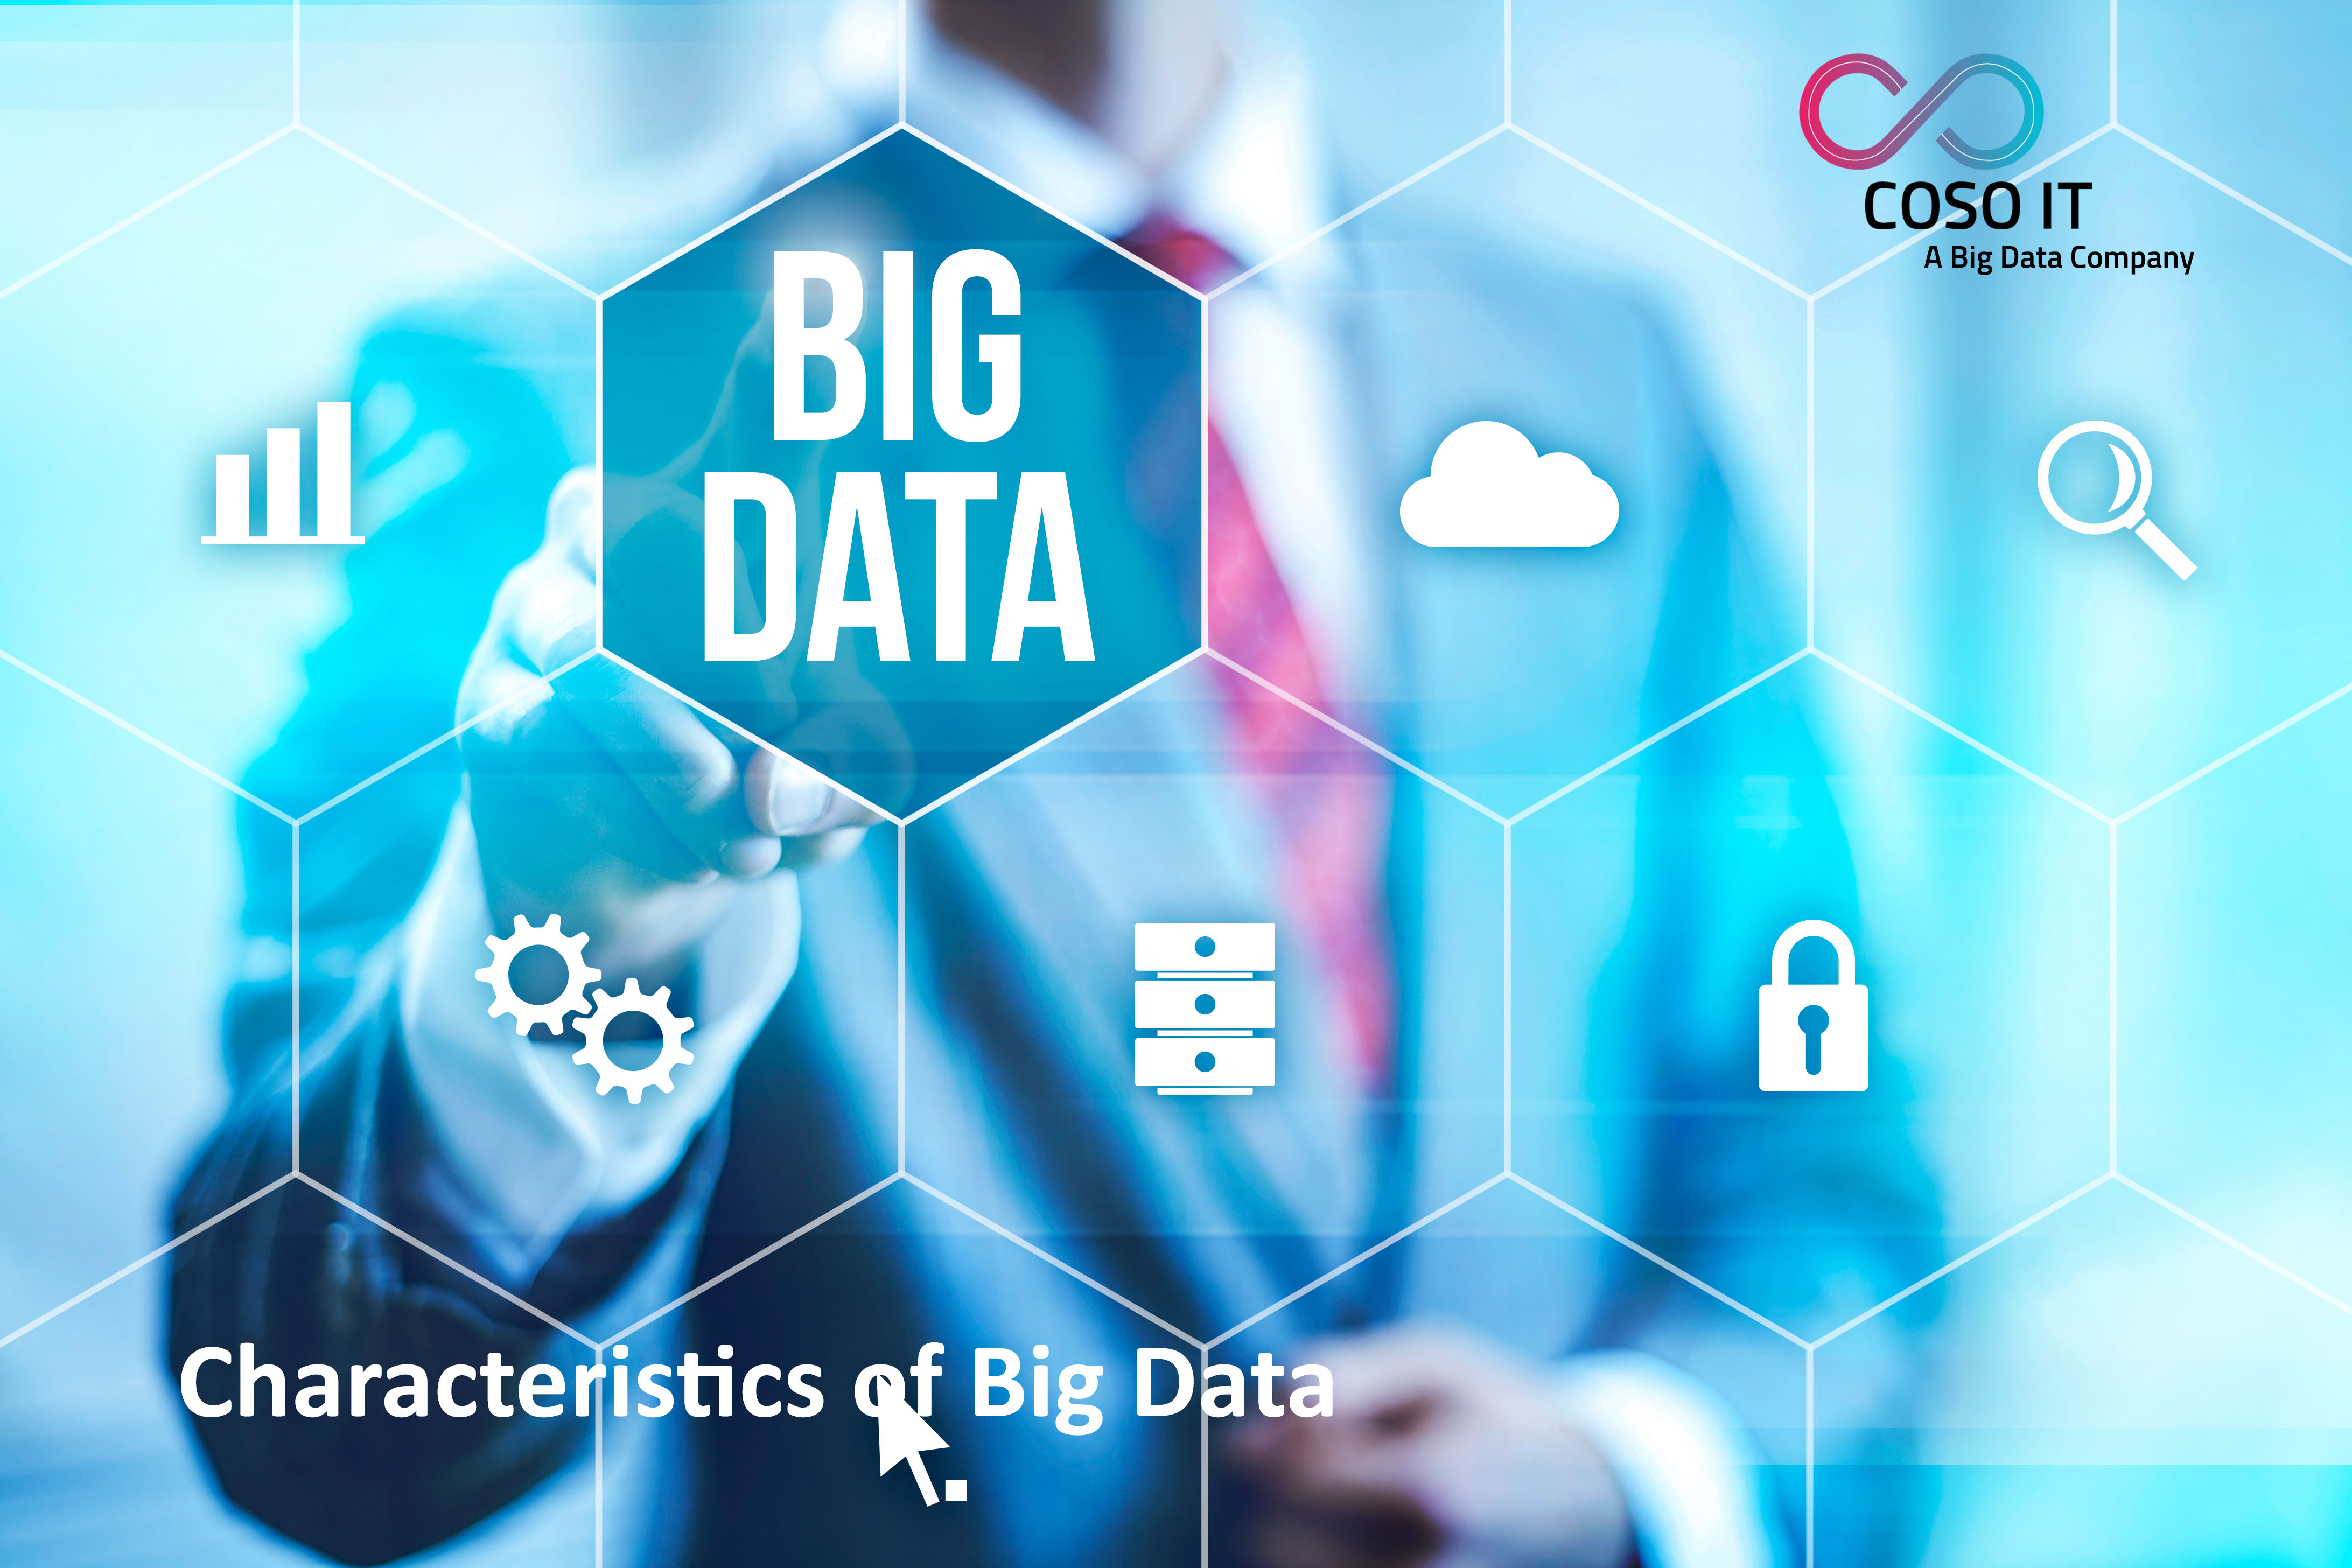 What are characteristics of Big Data?